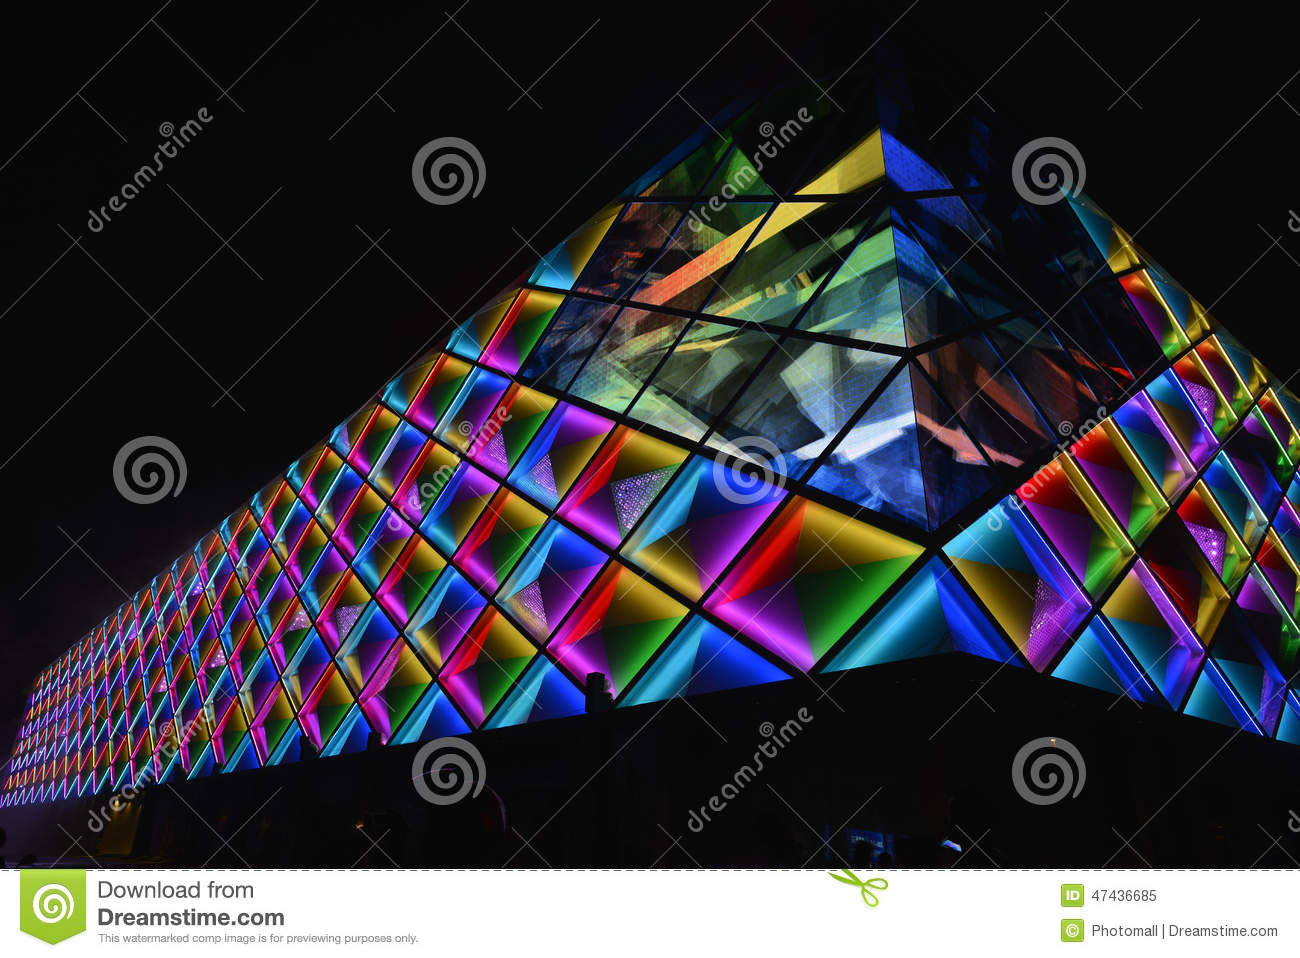 Download Led Curtain Wallnight Lighting Of Modern Commercial Building Stock Image